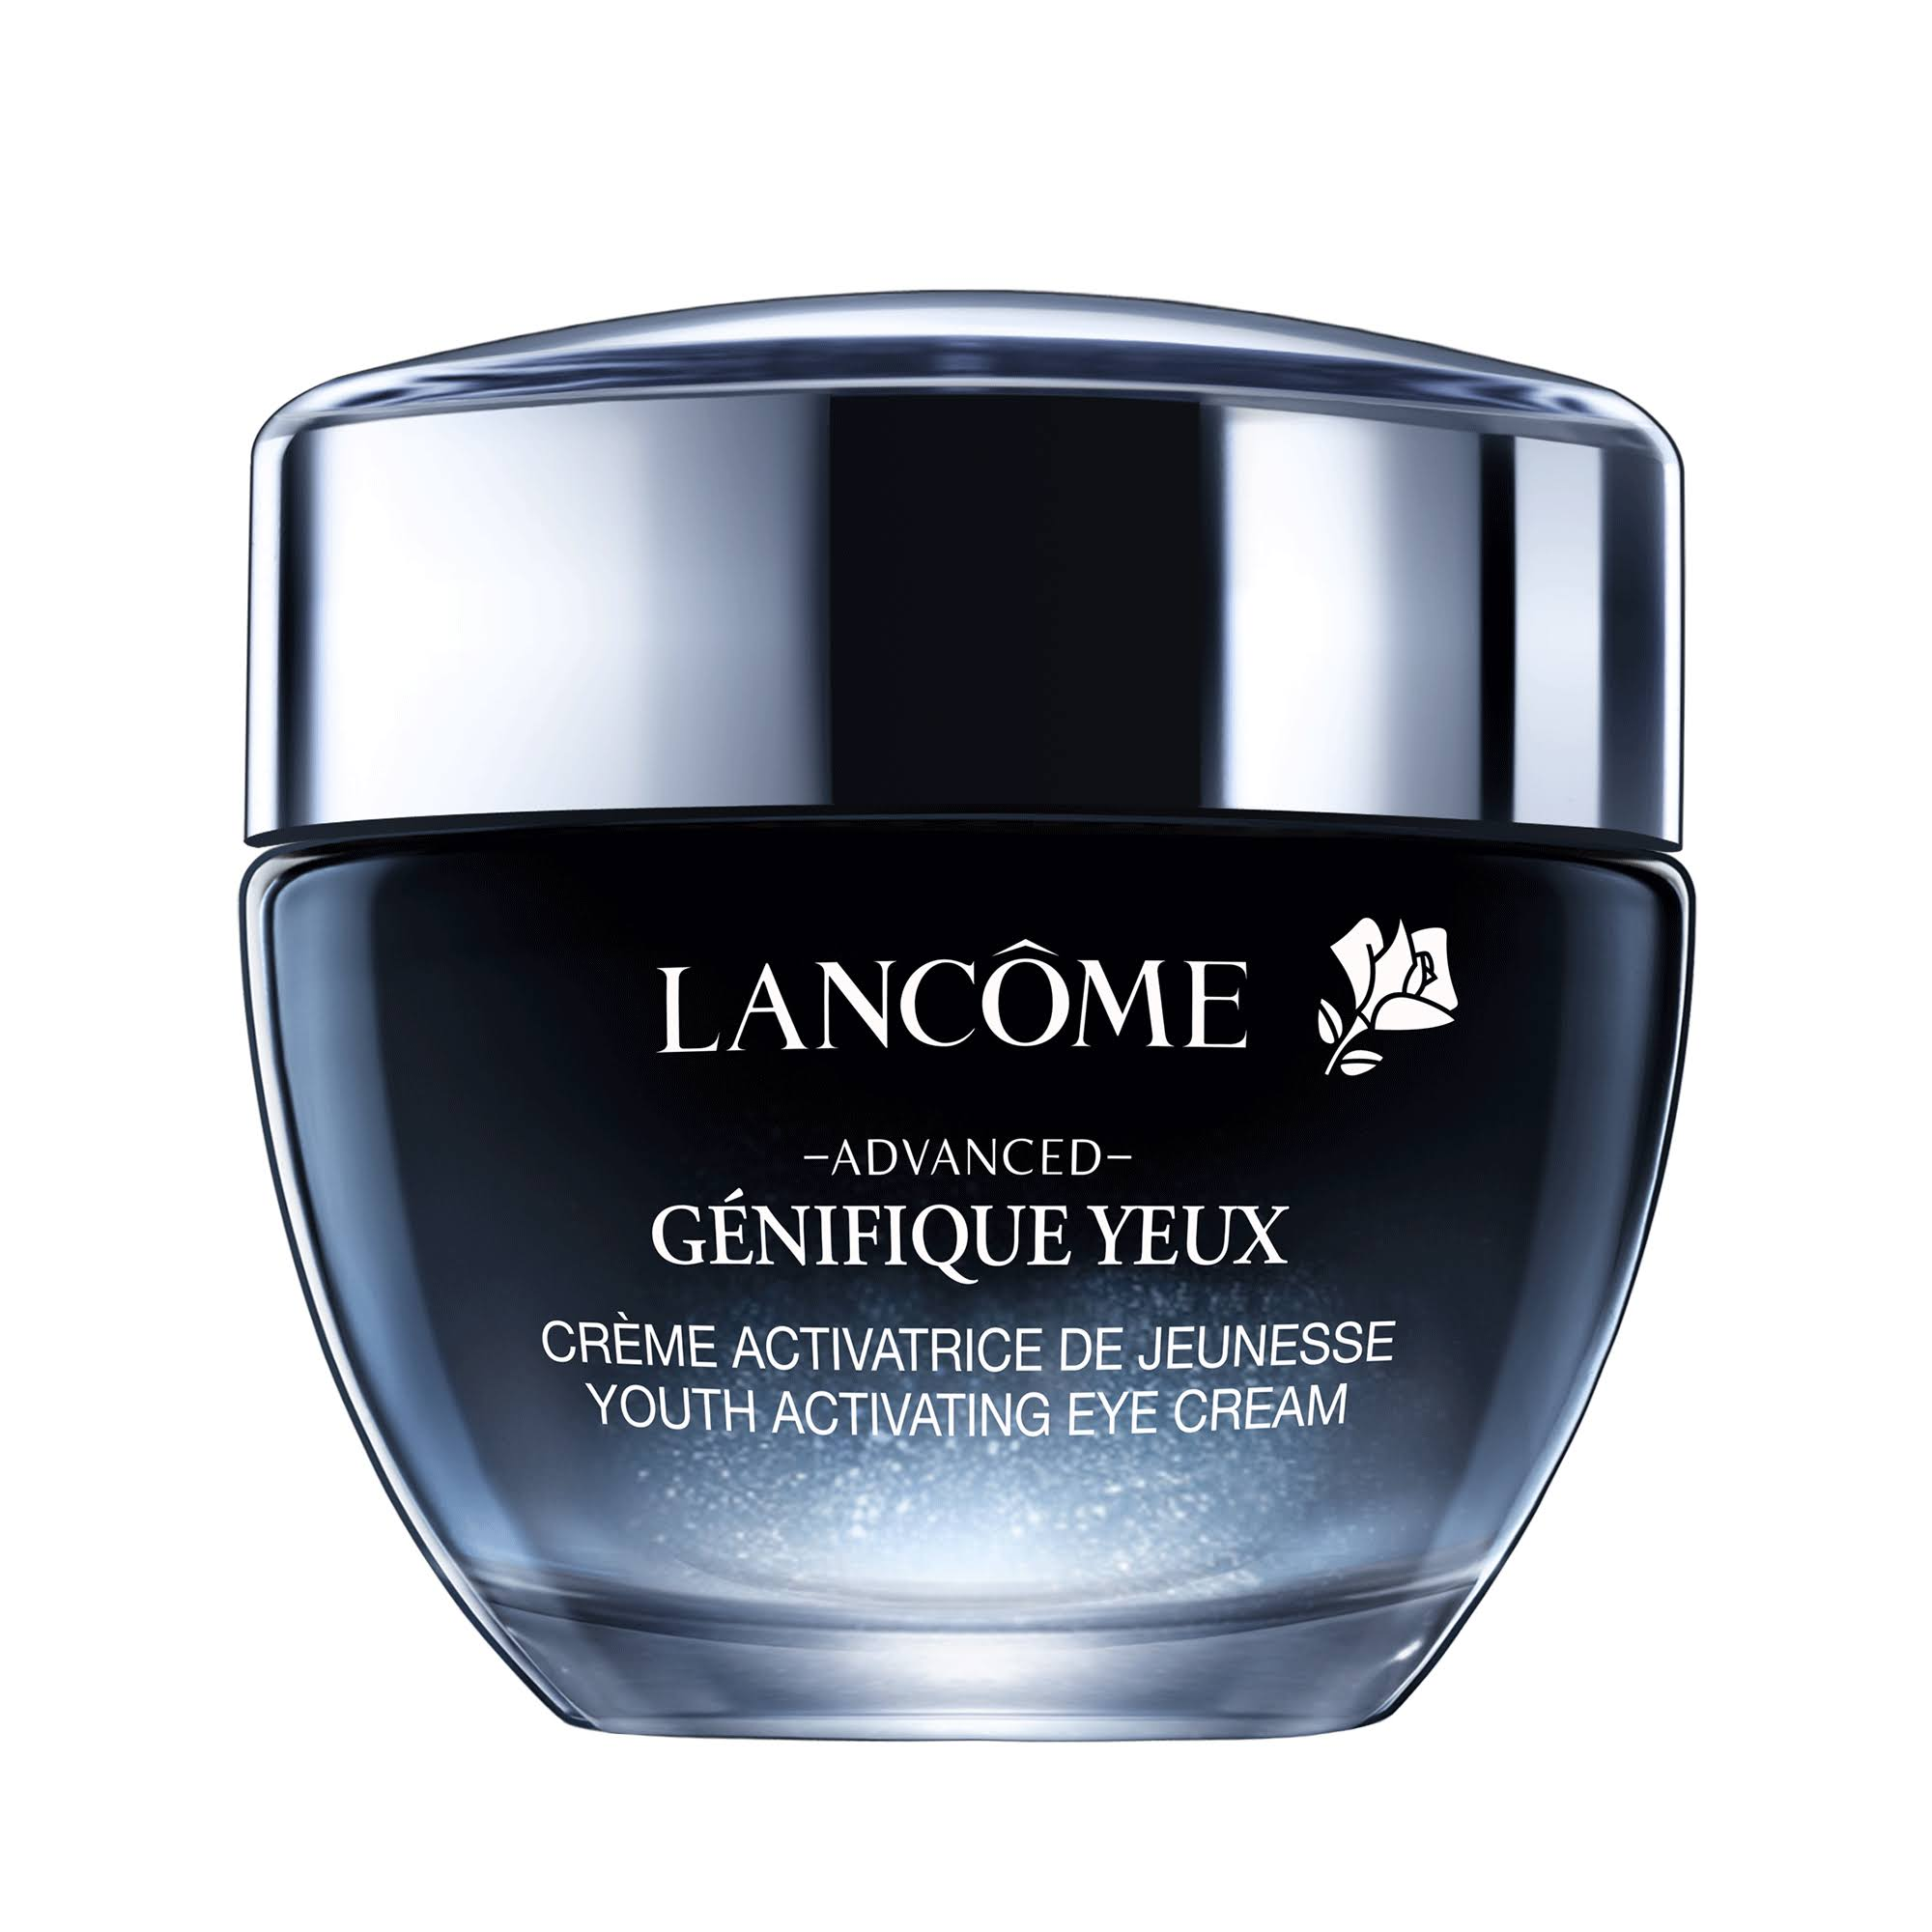 Lancôme Génifique Youth Activating Eye Cream - 15ml